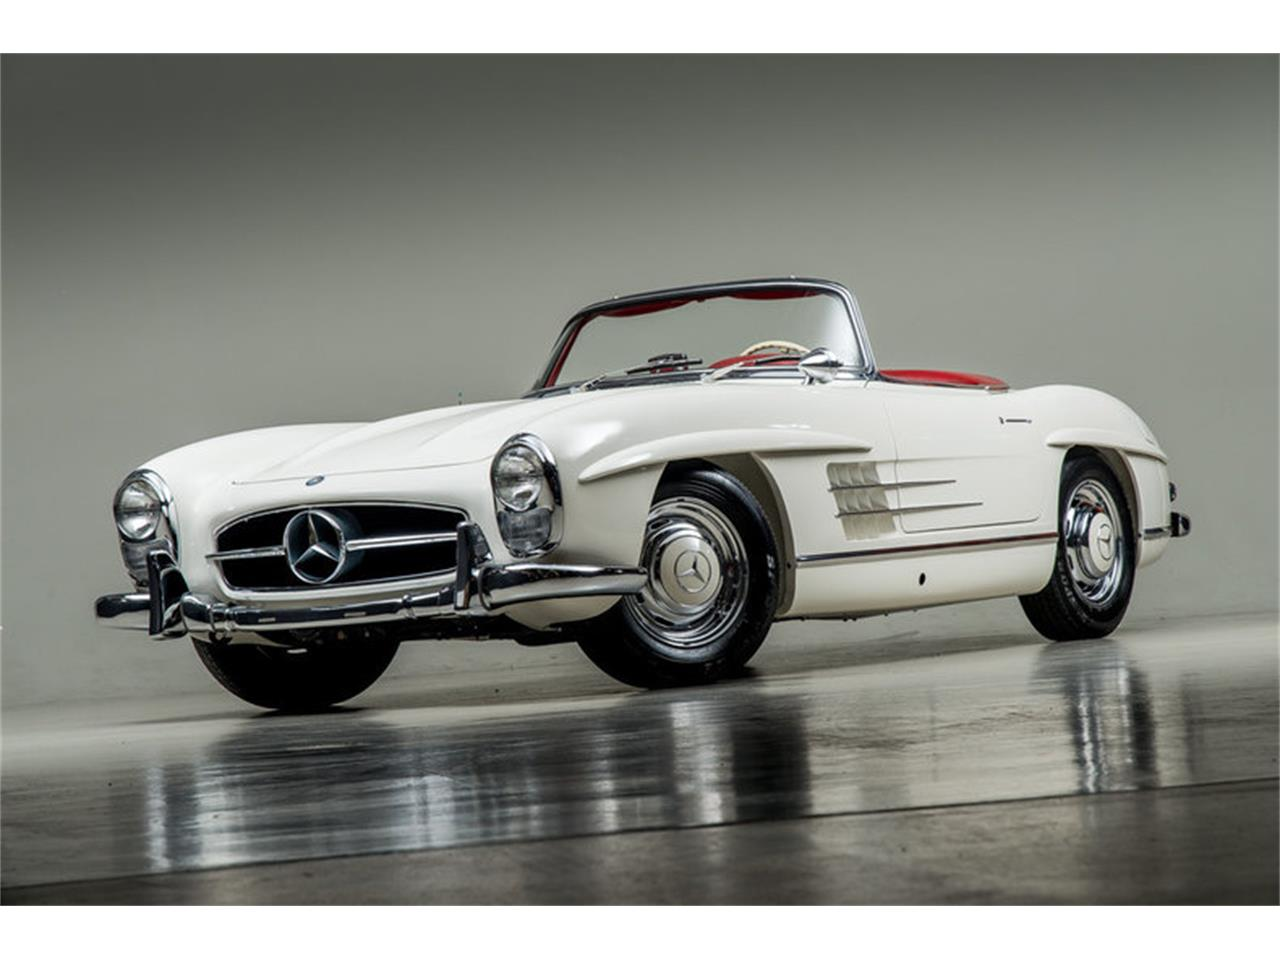 Large Picture of '63 Mercedes-Benz 300SL Roadster Auction Vehicle Offered by Canepa - EFPZ